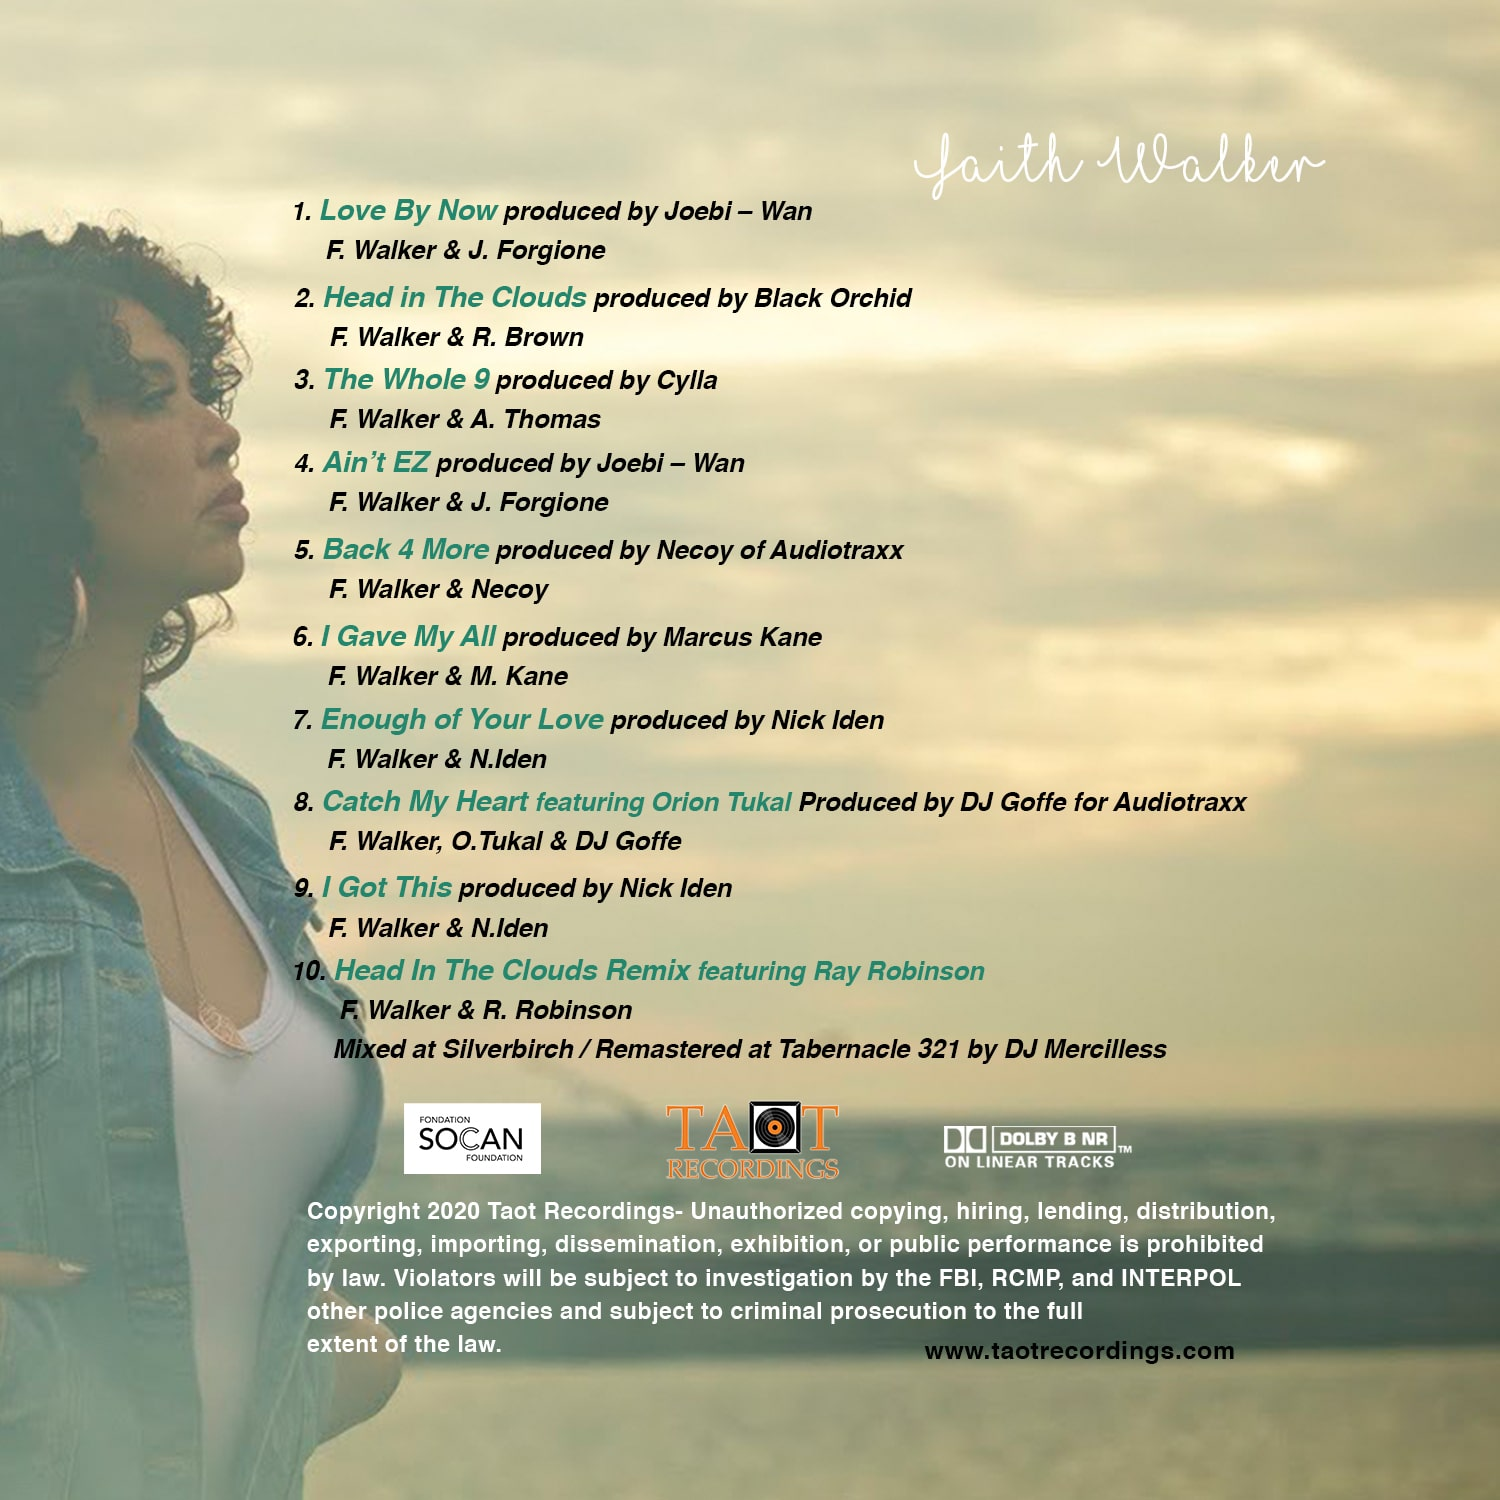 faith Walker-CD-cover BACK-c101-changes-min